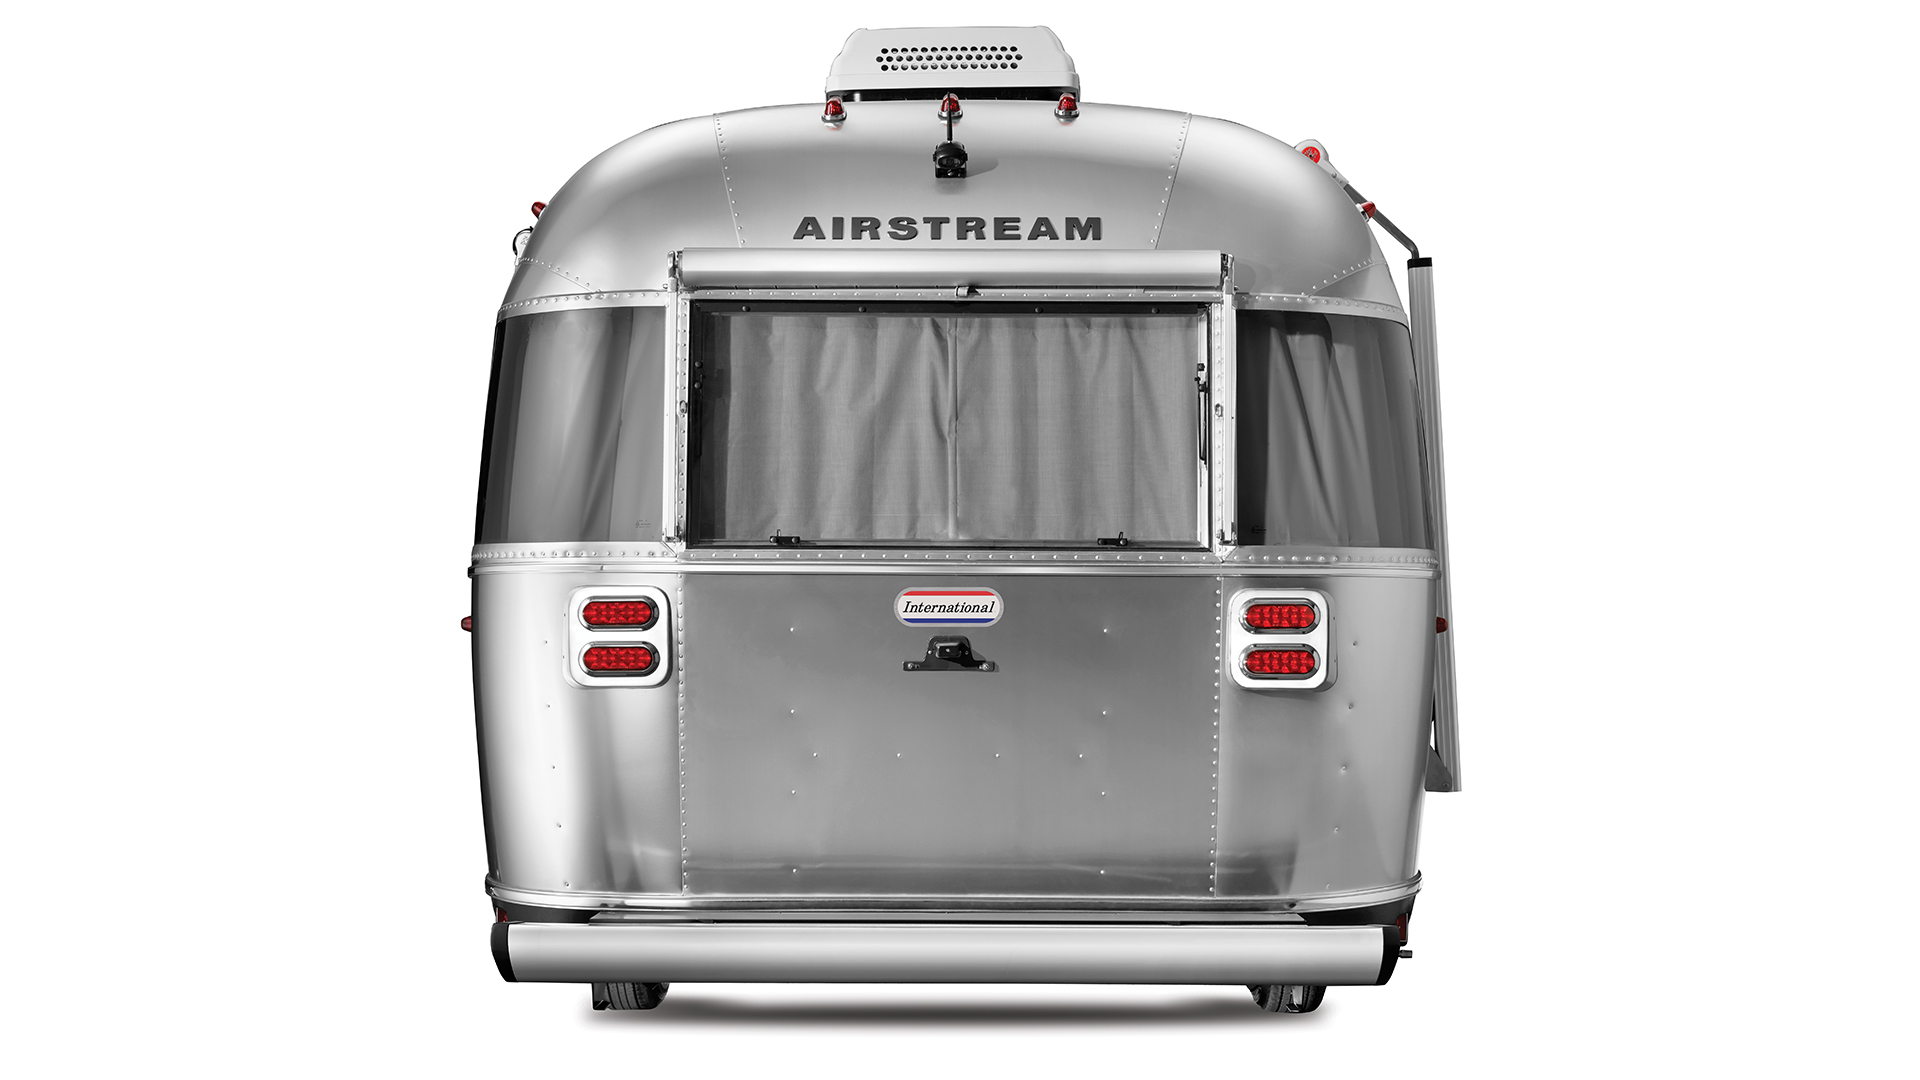 Airstream-25RB-International-Exterior-Rear